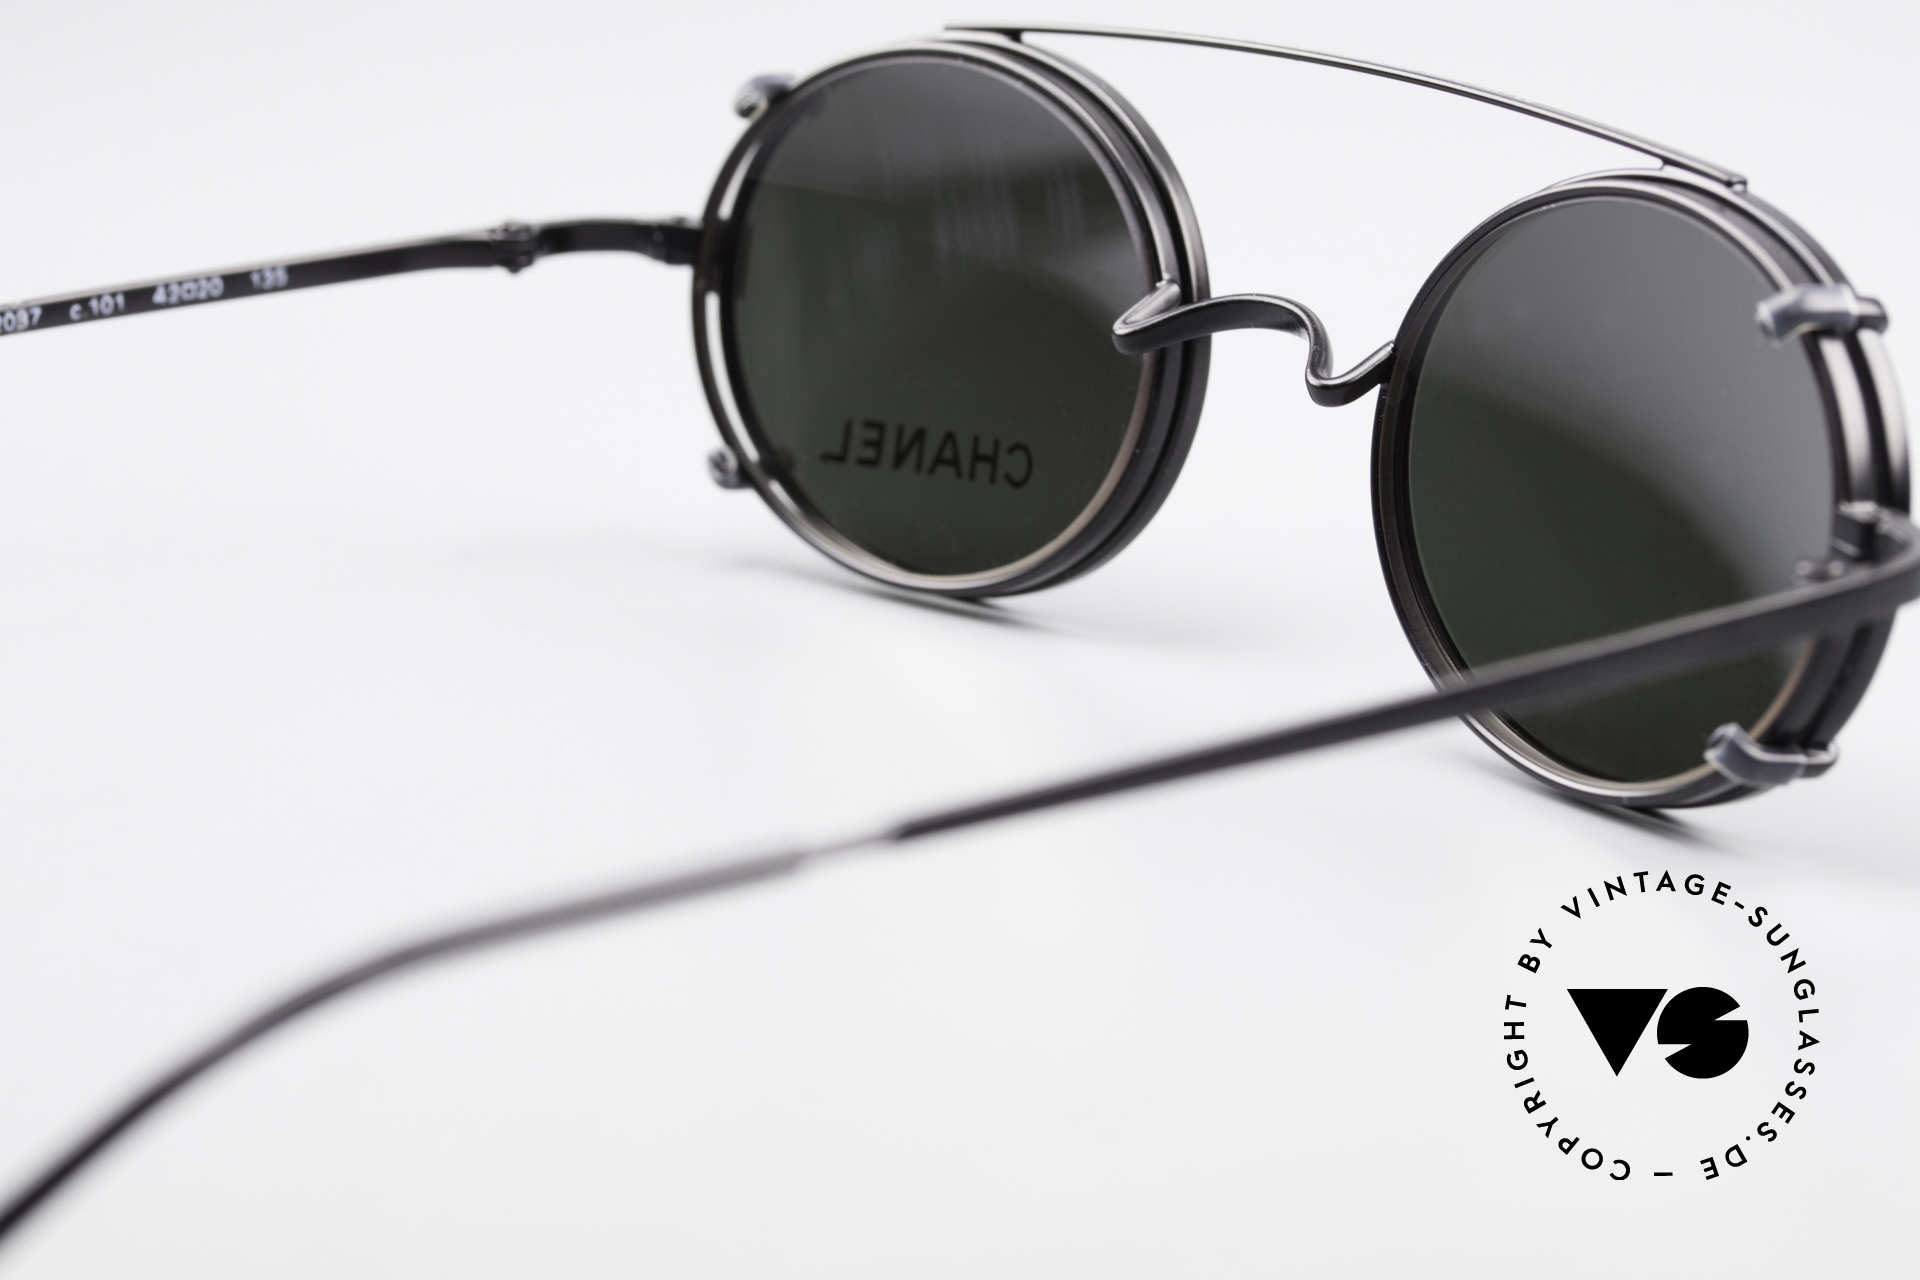 Chanel 2037 Luxury Glasses With Clip On, NO RETRO fashion, but a 20 years old vintage Original, Made for Men and Women